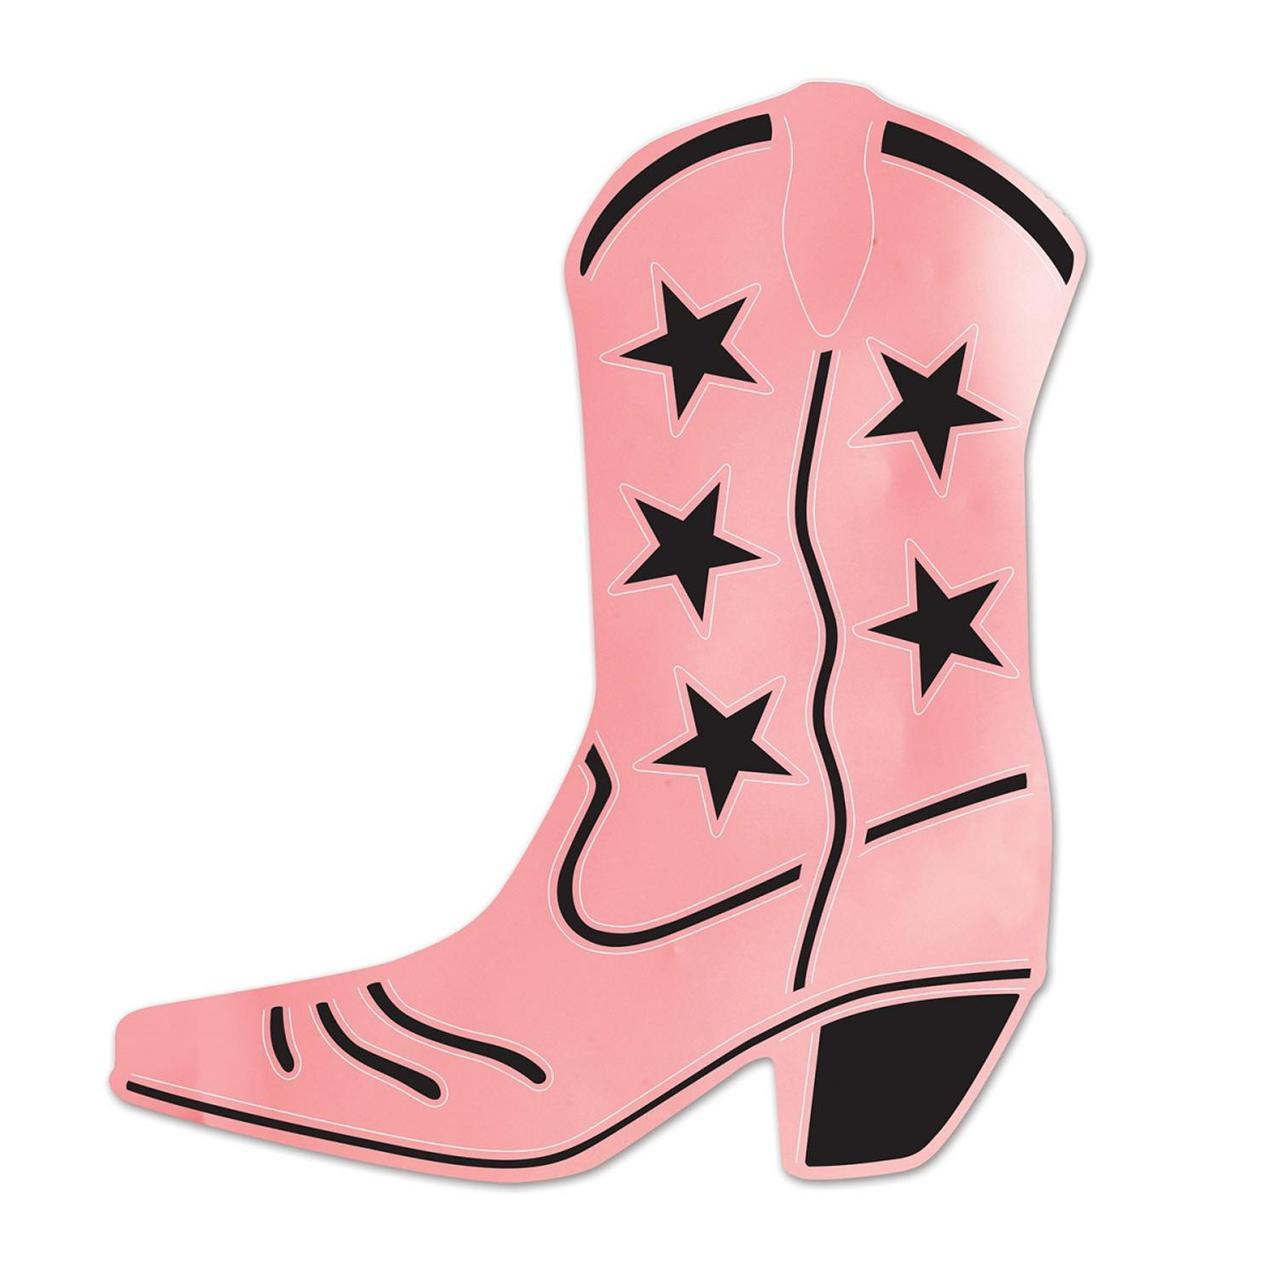 1280x1280 Club Pack Of 24 Pink Amp Black Foil Country Western Cowboy Boot